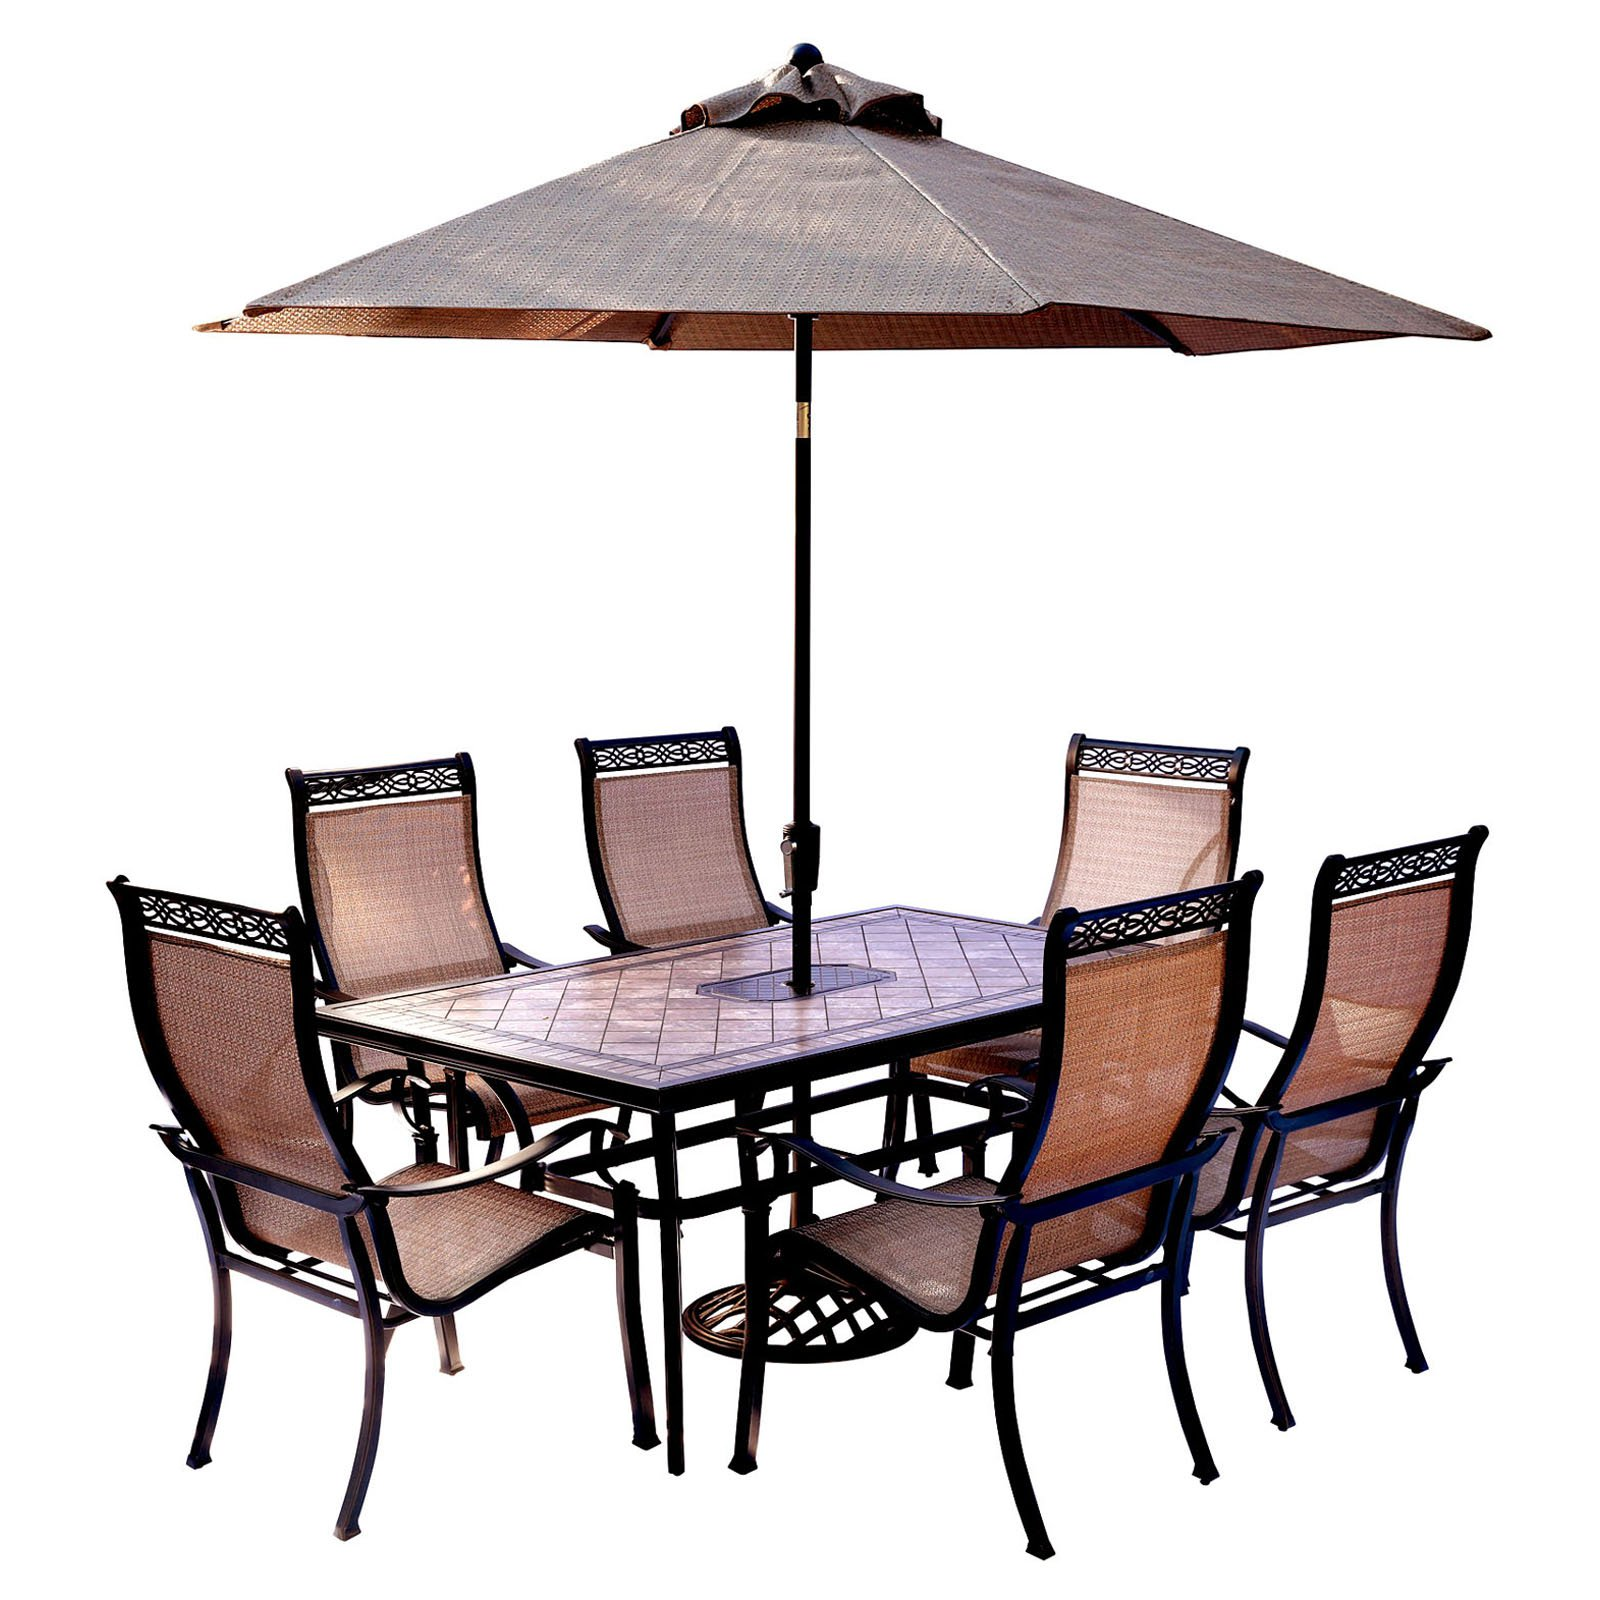 Hanover Outdoor Monaco 7 Piece Tile Top Dining Set With Sling Stationary  Chairs,